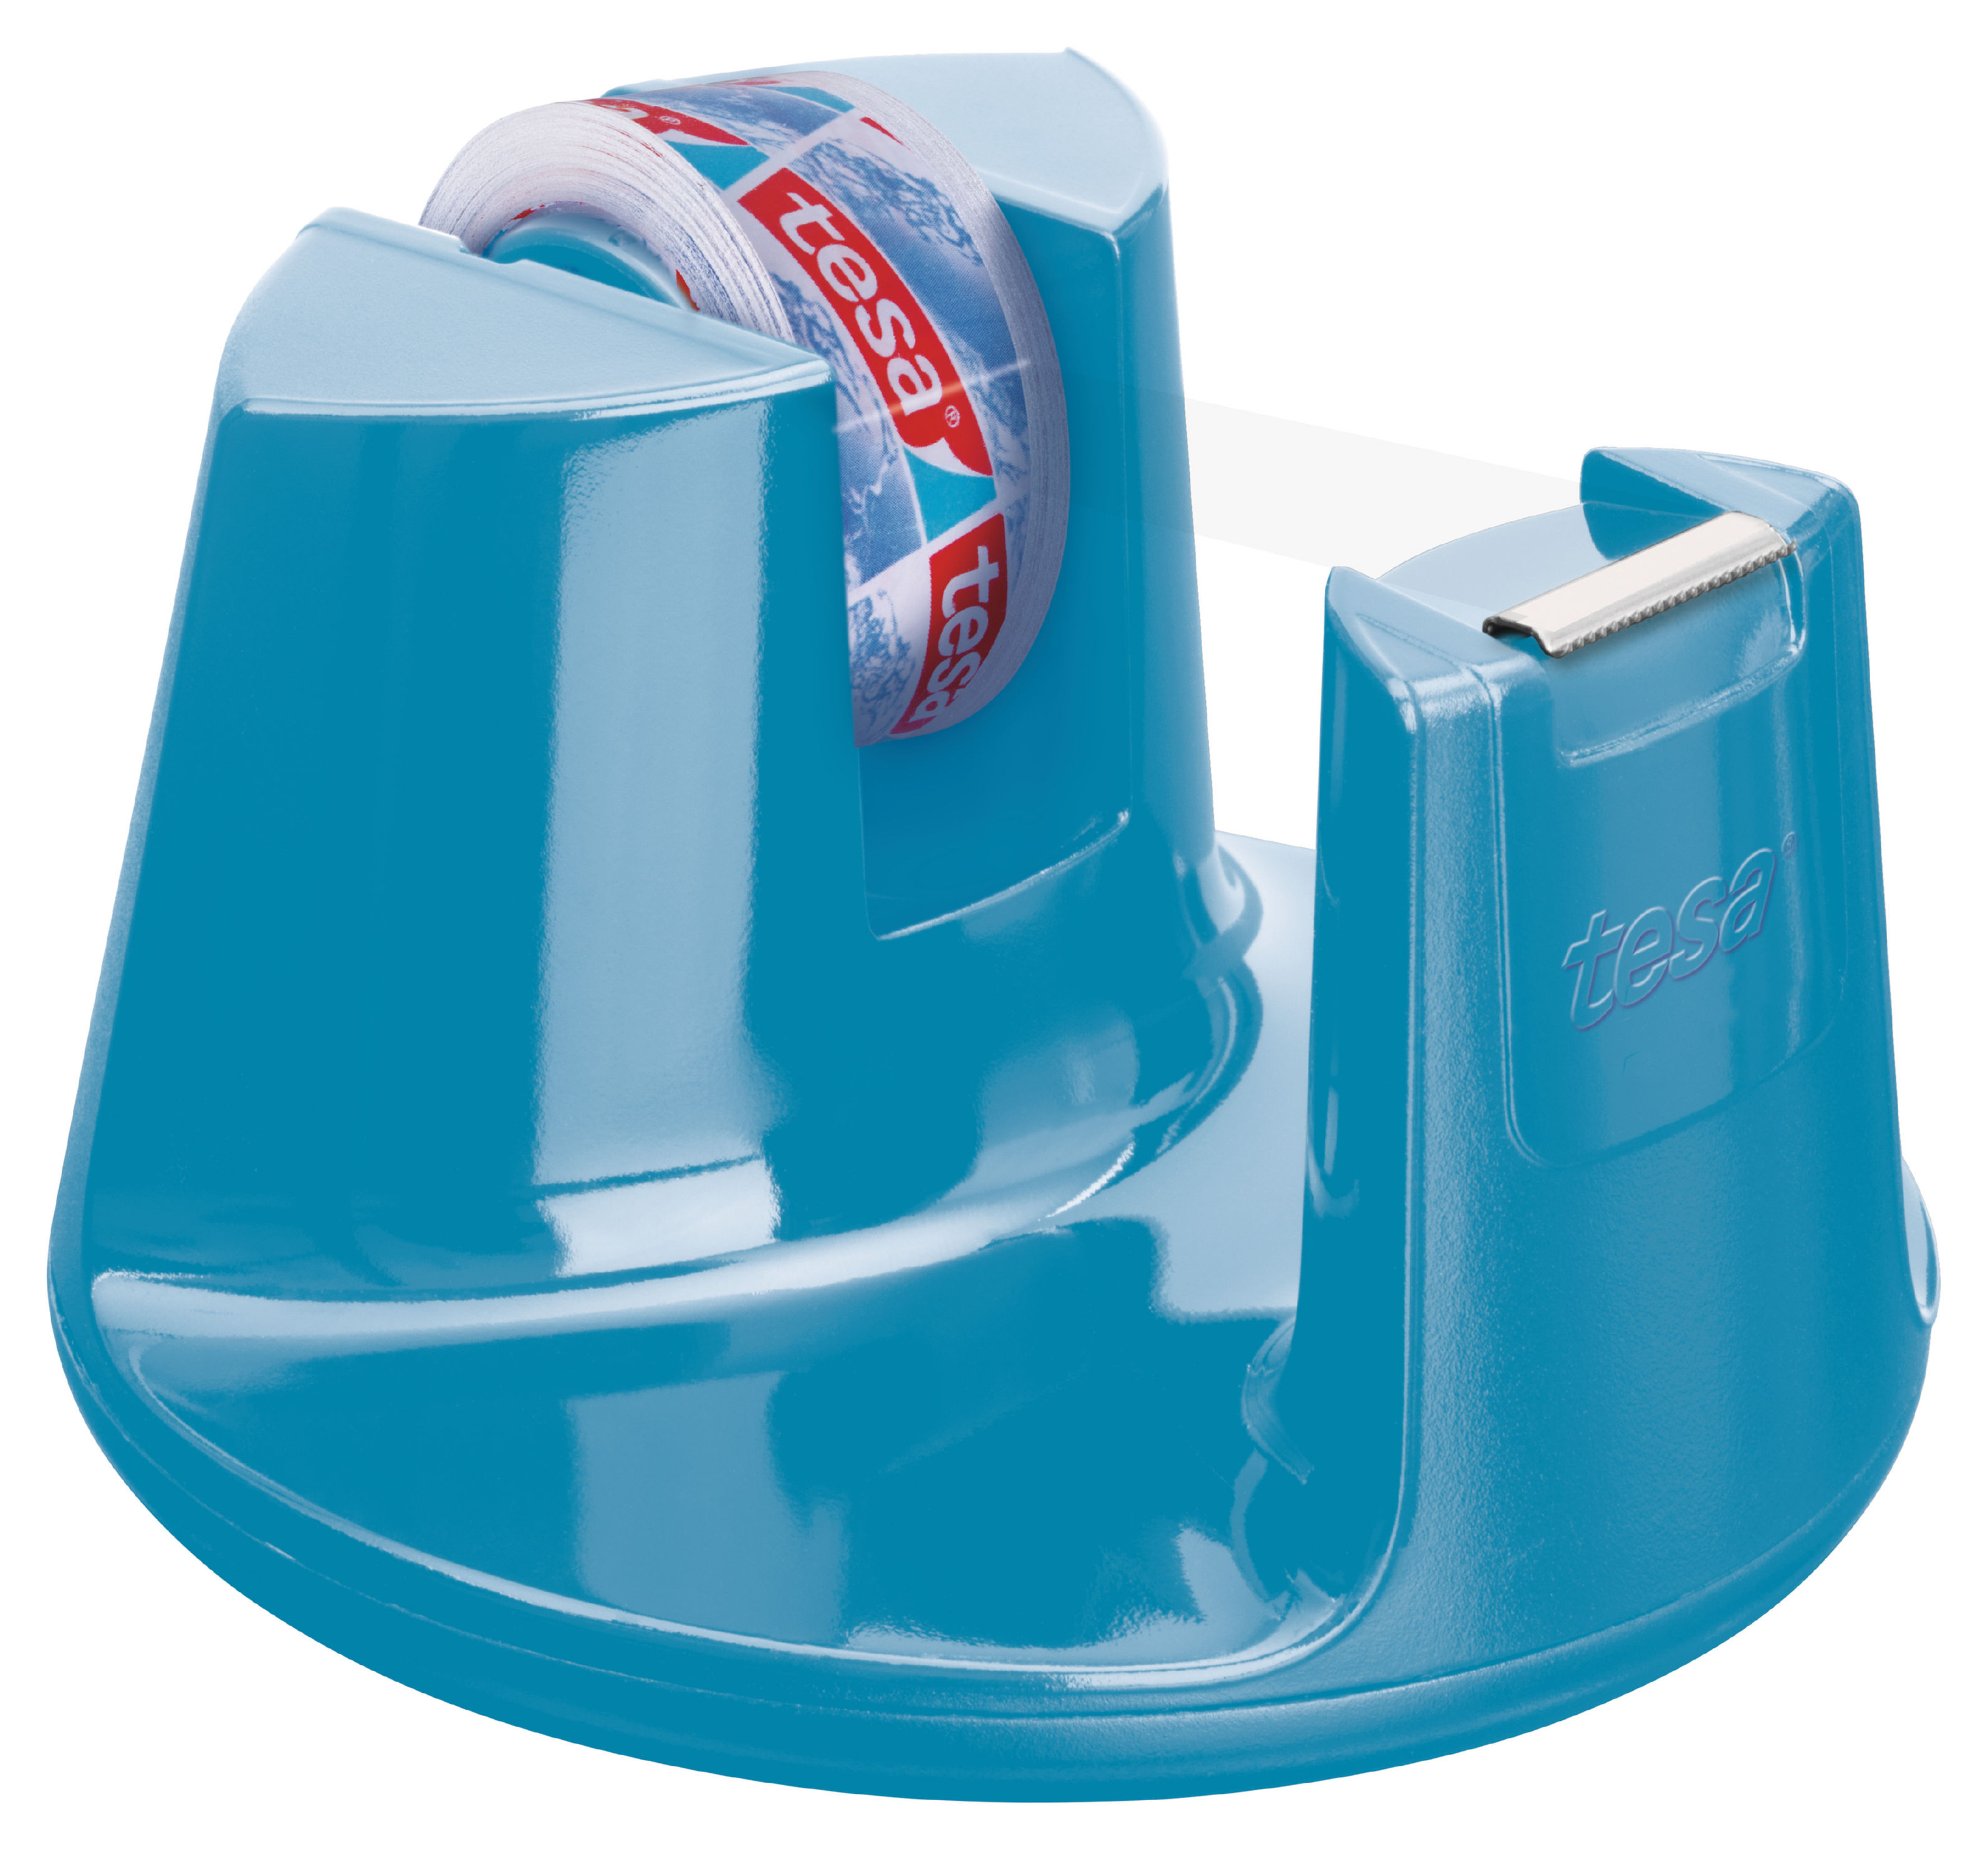 tesa Easy Cut Compact Dispenser Blue inc 1 roll 15mmx10m